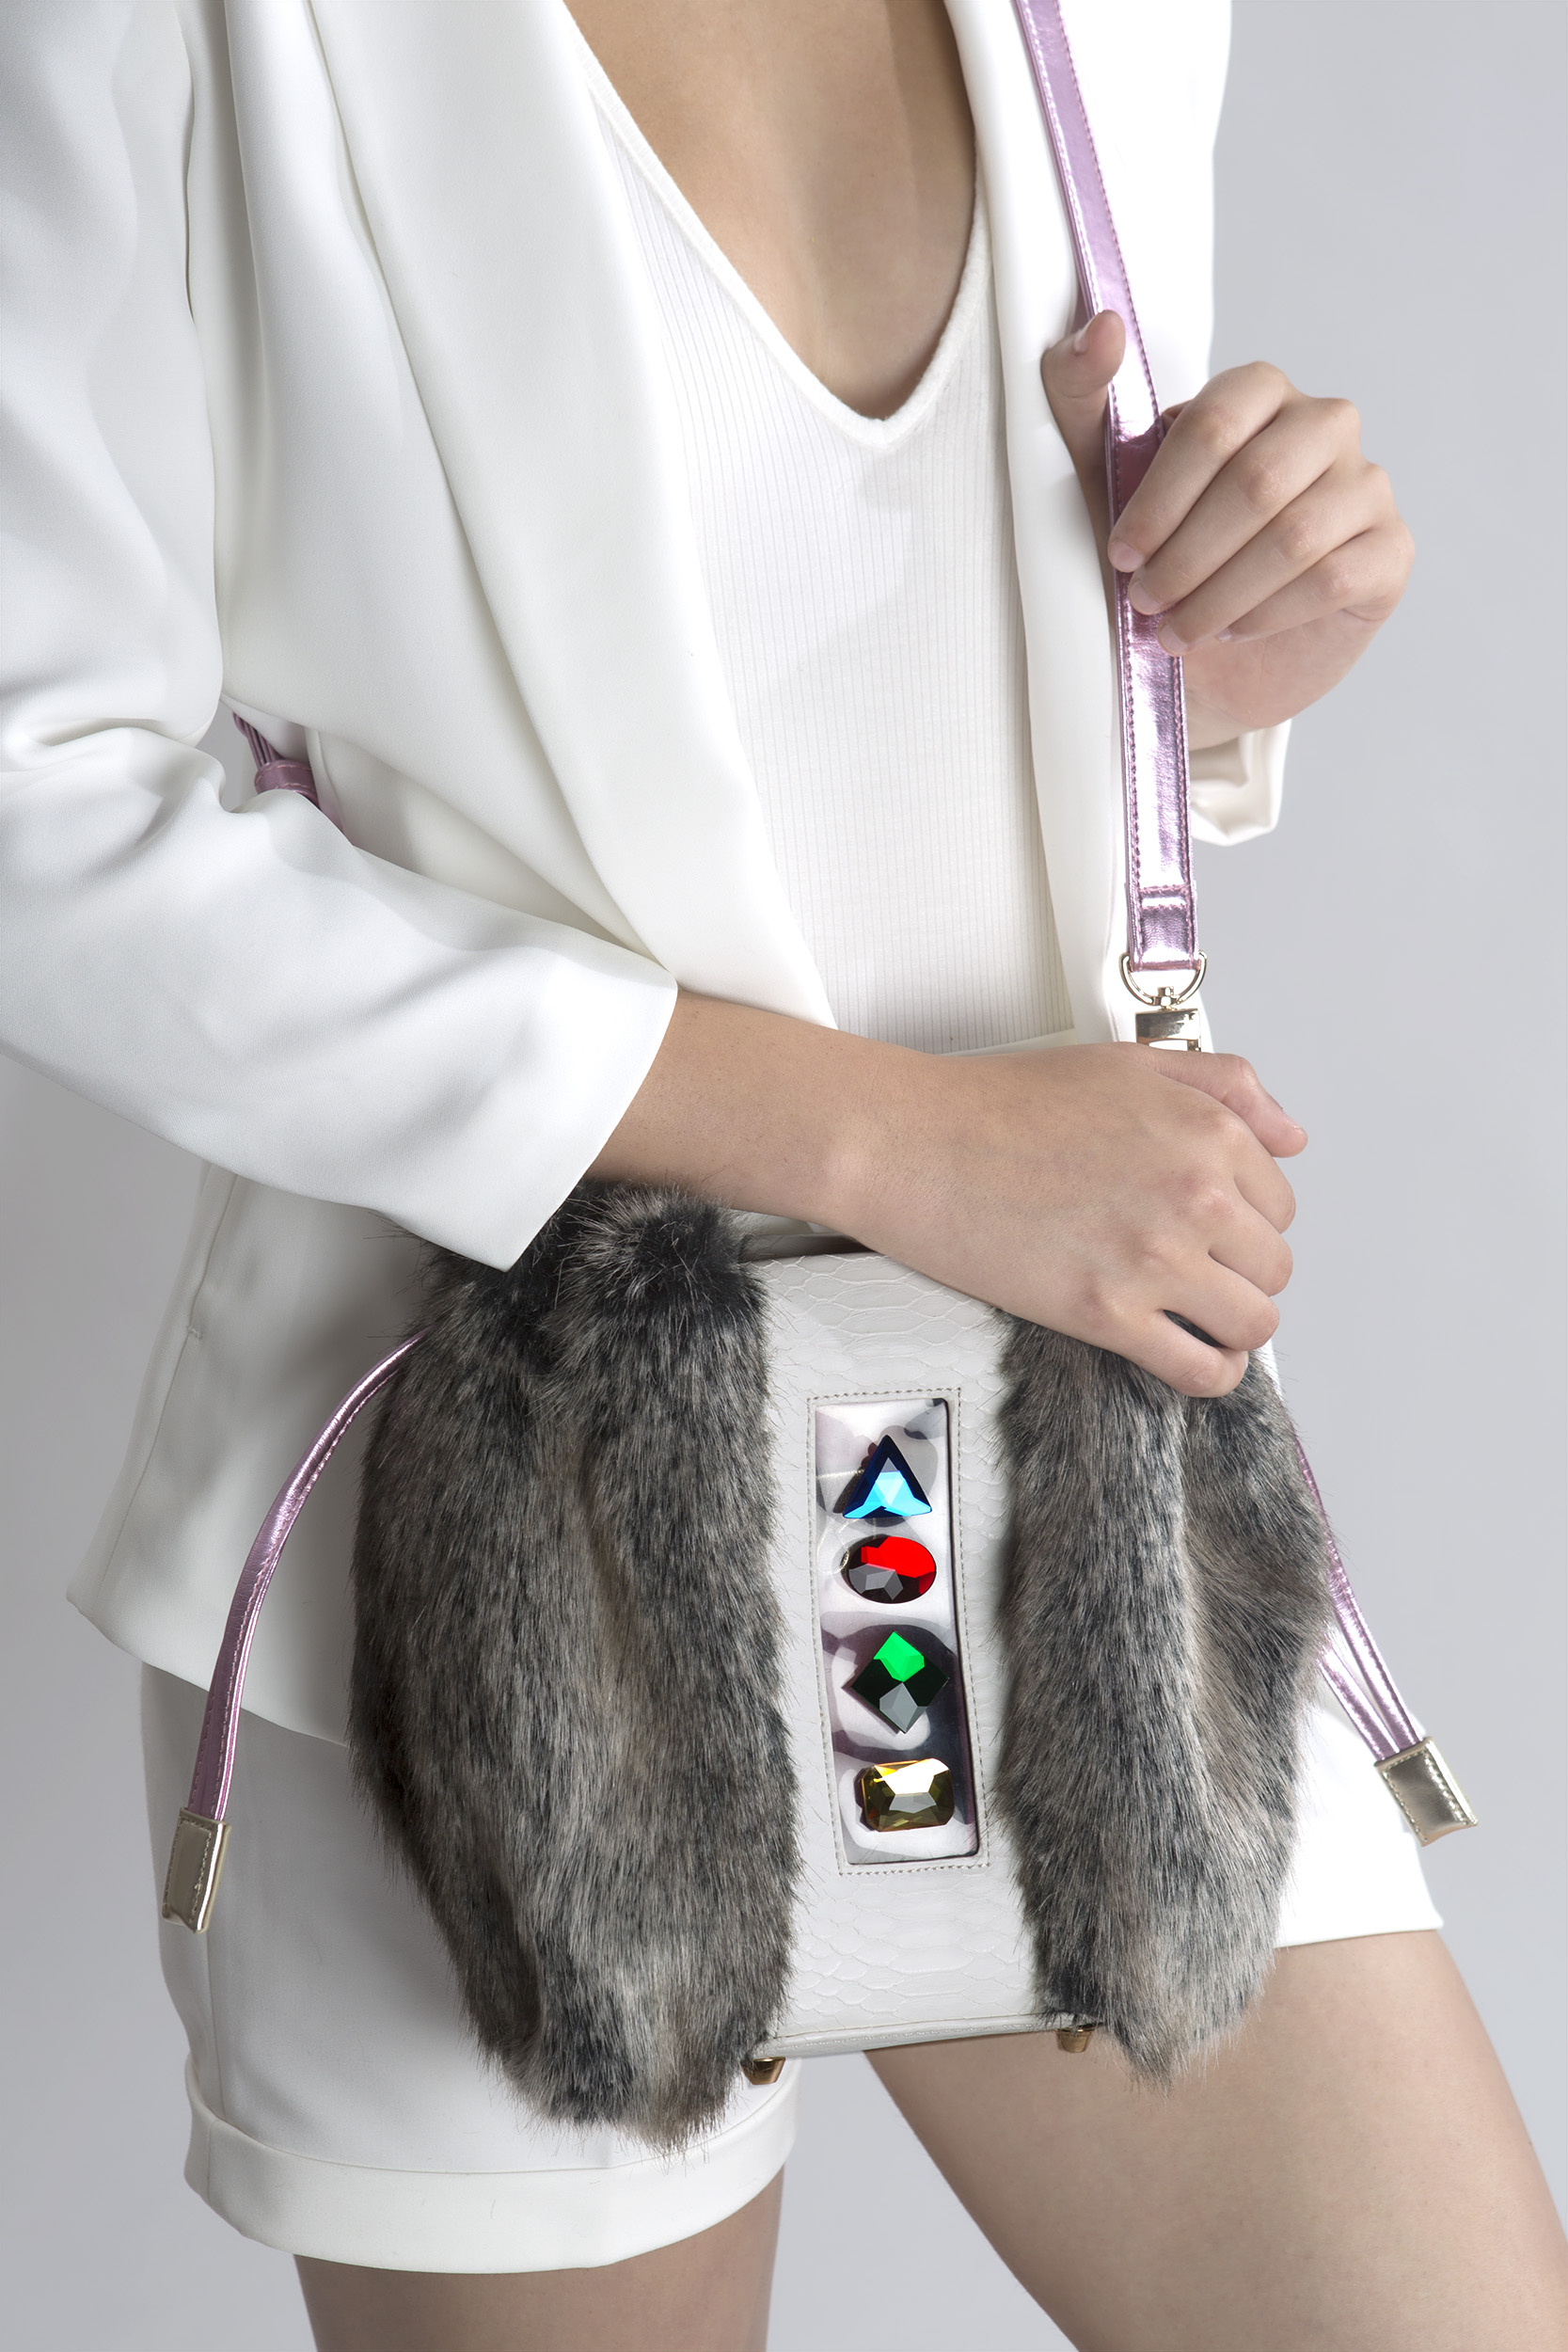 FruitenVeg-NAMI bag-never-leather-Peta-approved-vegan-faux-fur-designer-cross-body-handbag-nyc